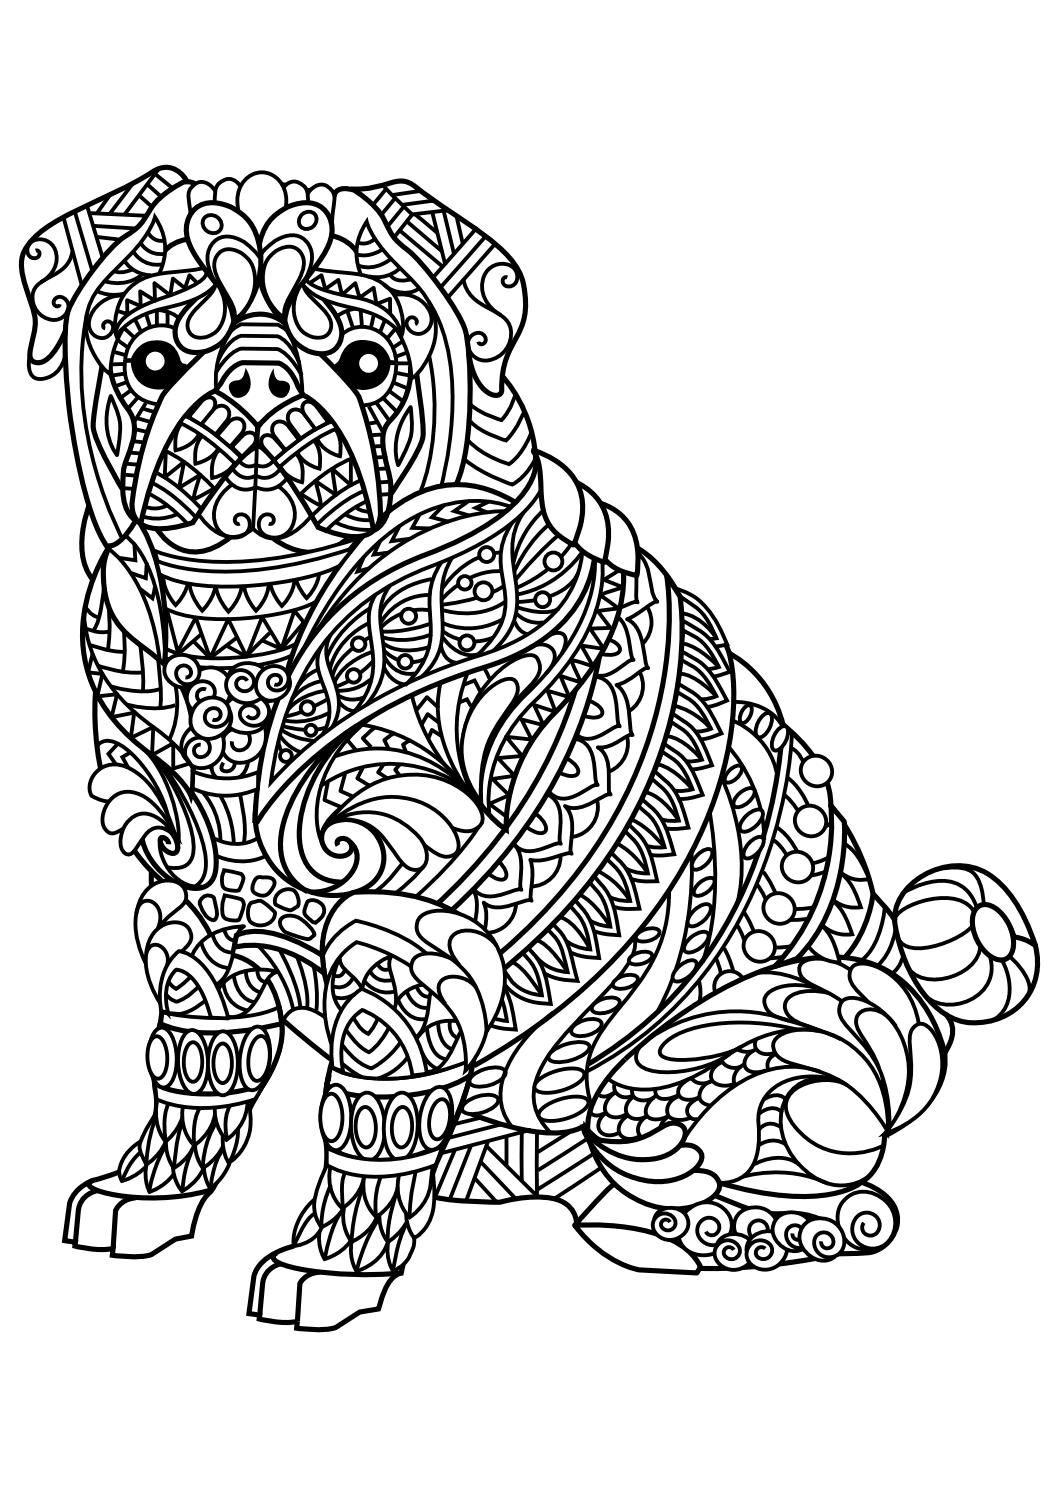 Animal Coloring Pages Pdf | Coloring - Animals | Dog Coloring Page - Free Printable Animal Coloring Pages